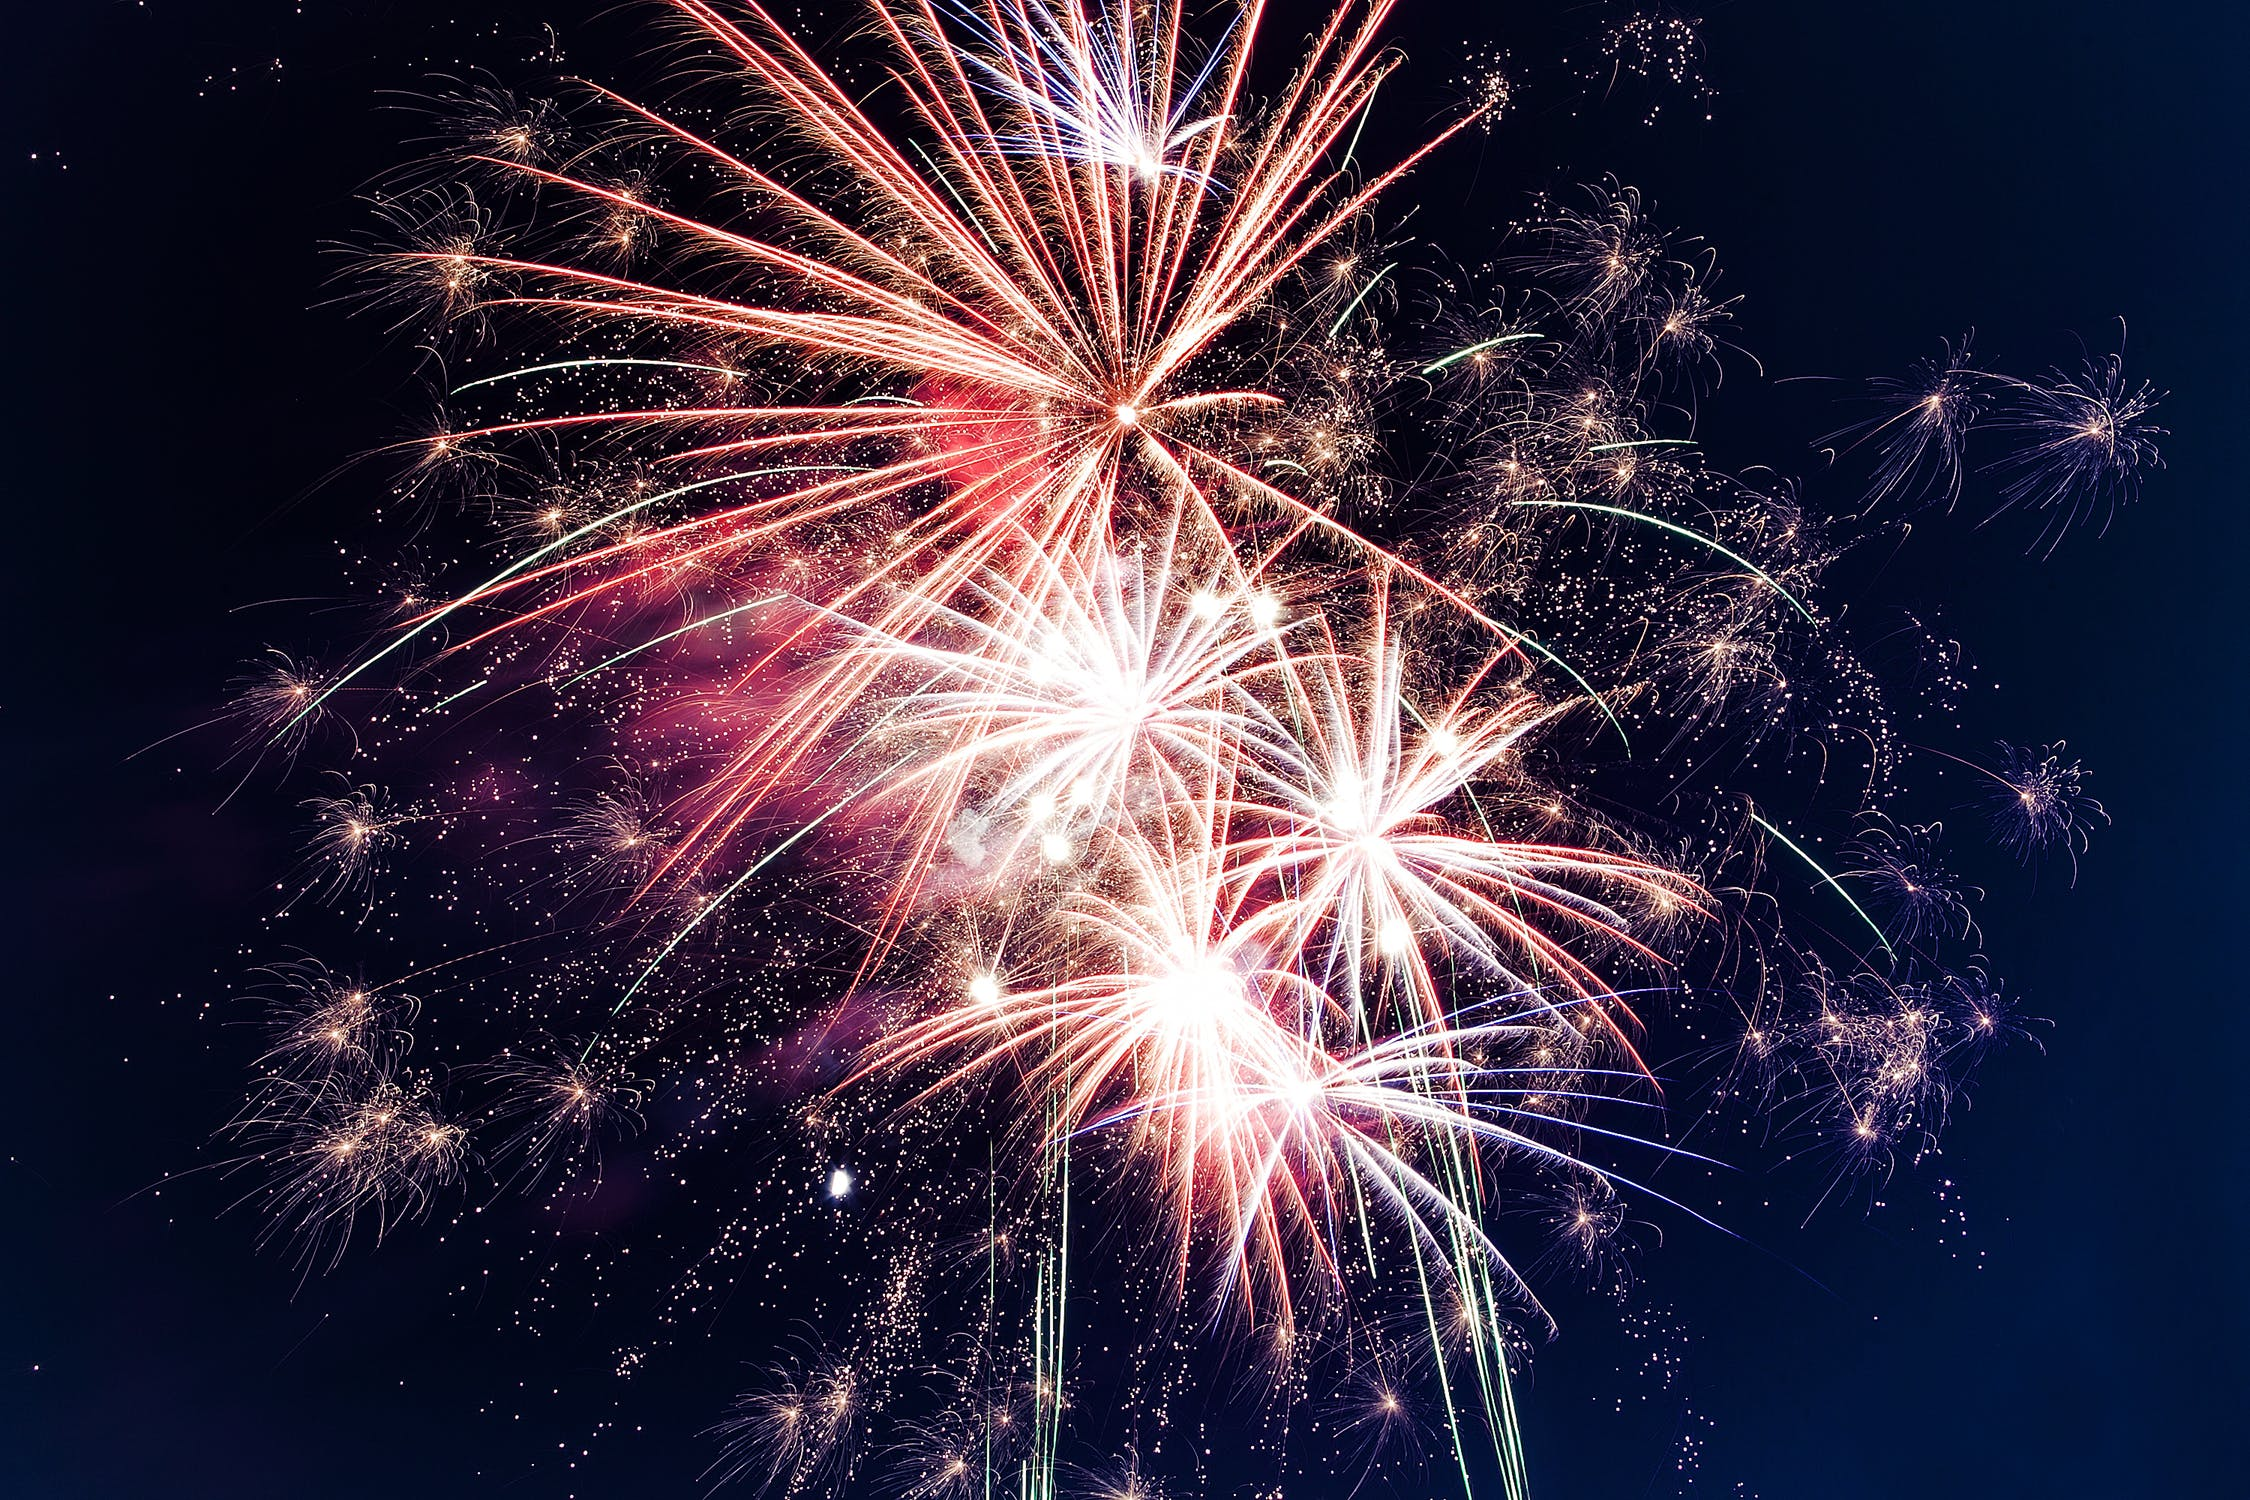 boerne city fireworks show 4th of july